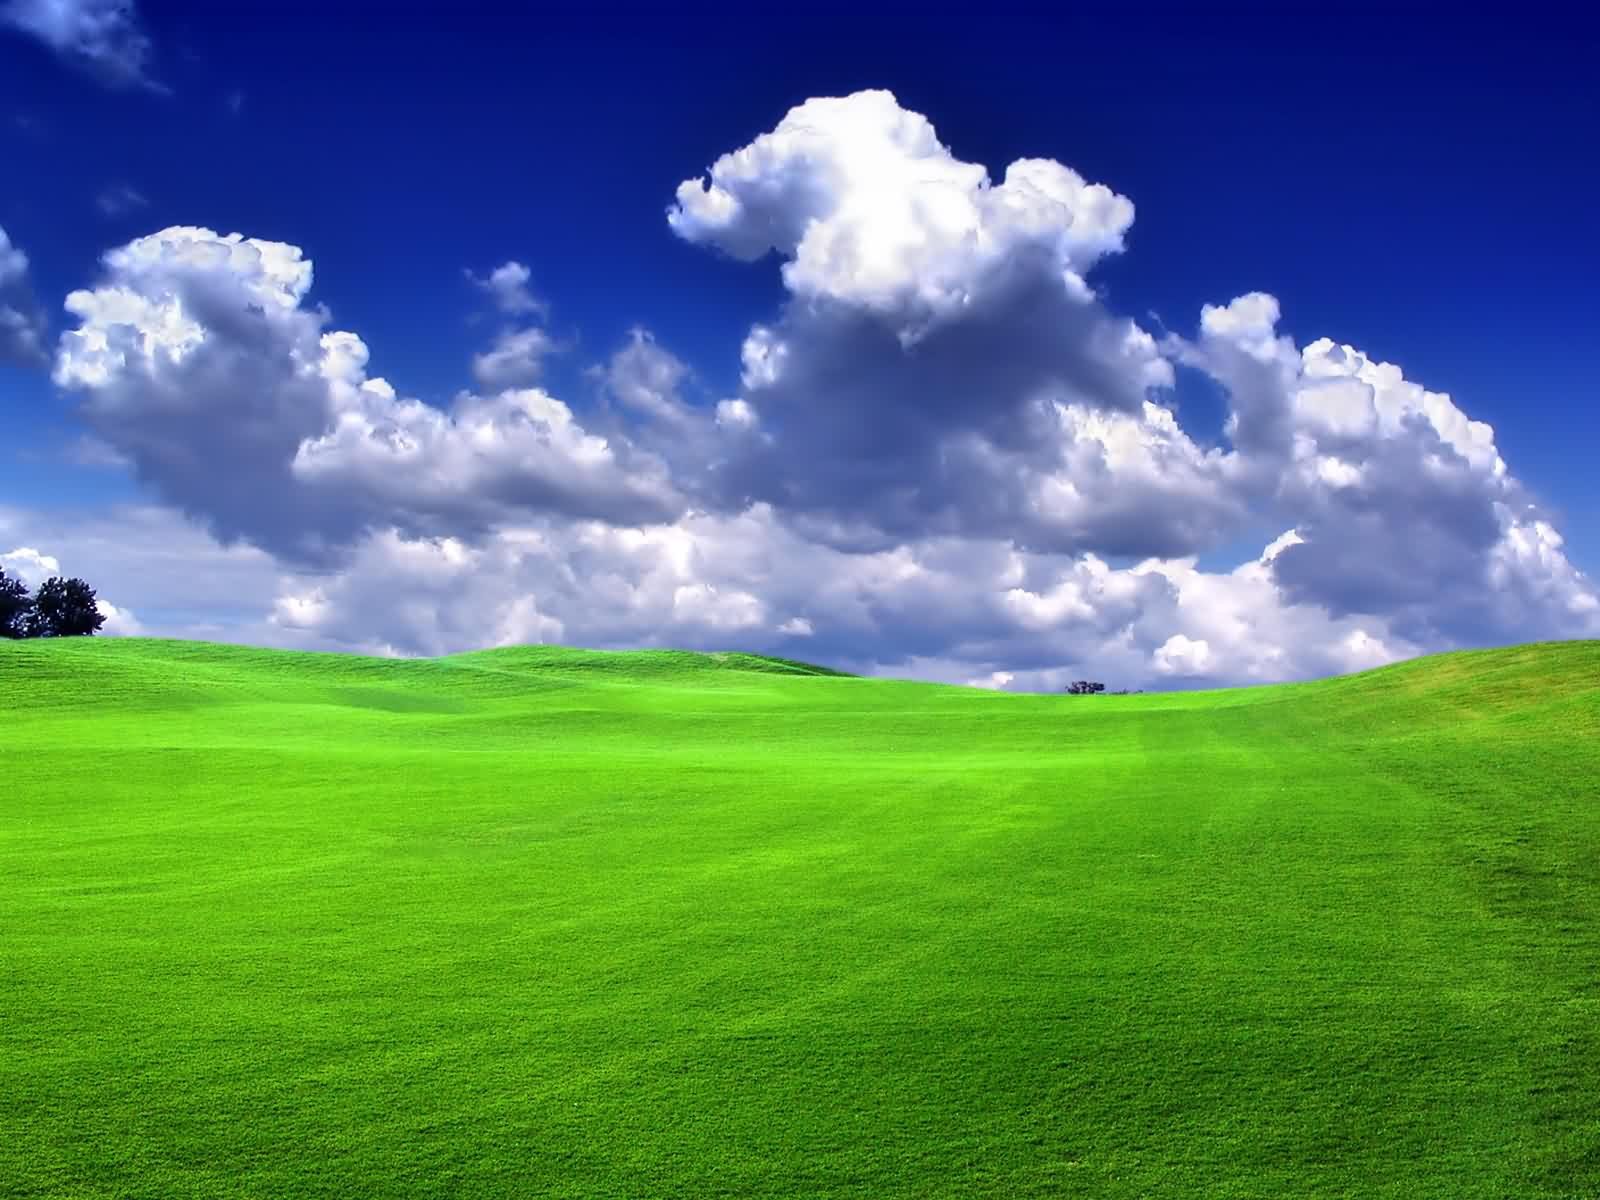 Desktop High Definition WallpapersCool WallpapersNature Wallpapers 1600x1200